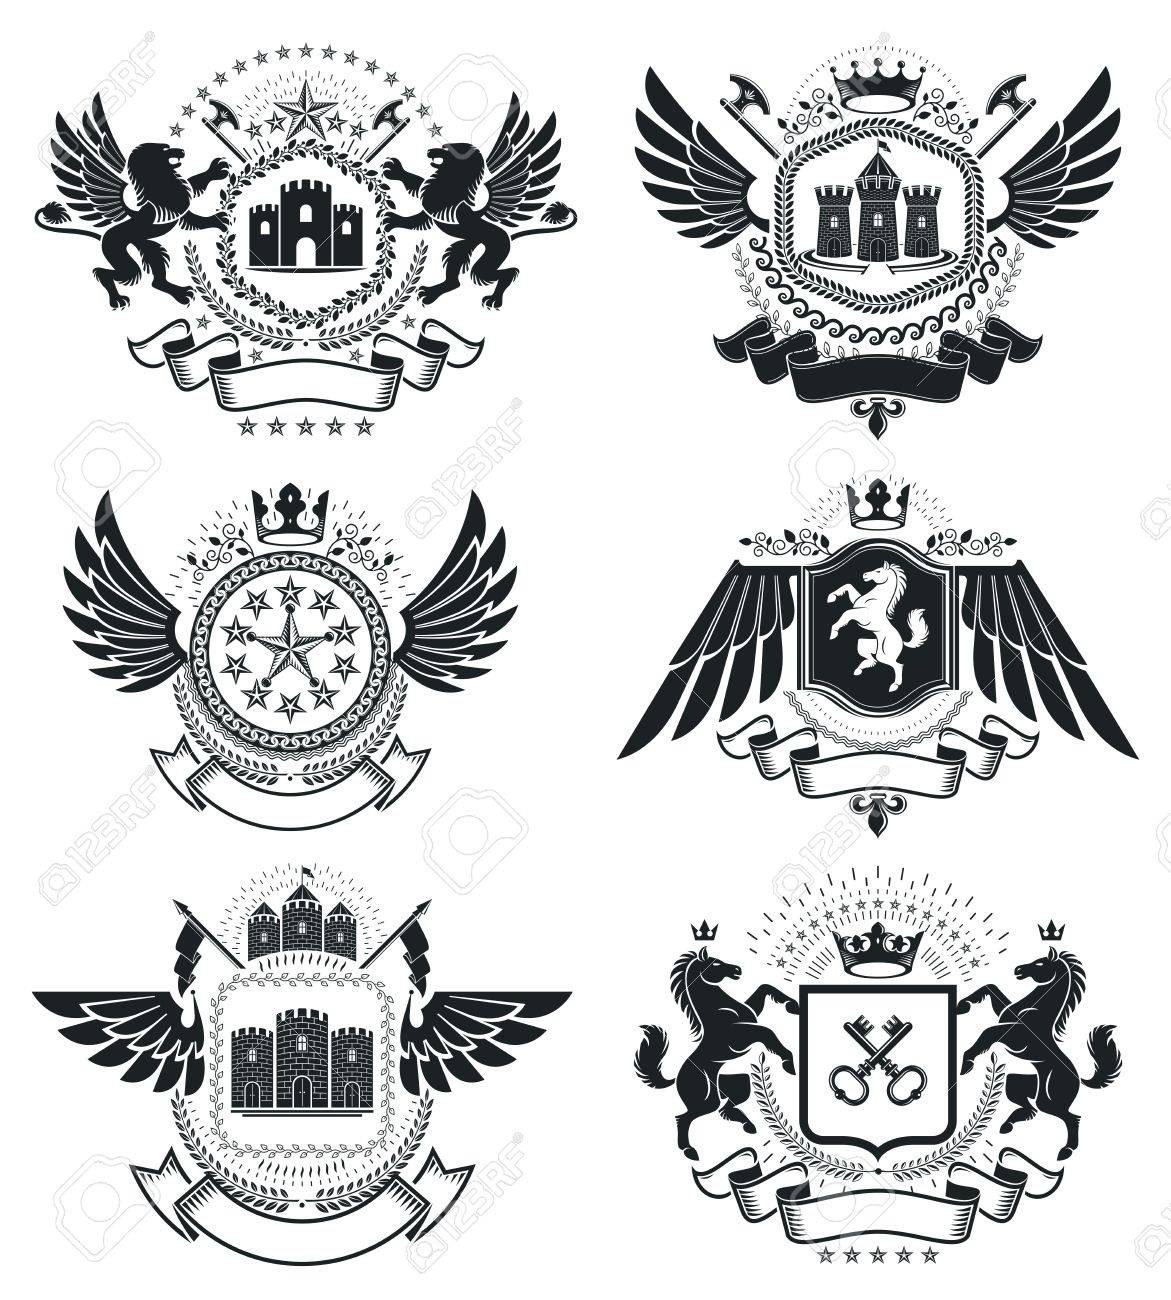 Heraldic coat of arms vintage vector emblems classy high quality heraldic coat of arms vintage vector emblems classy high quality symbolic illustrations collection biocorpaavc Images